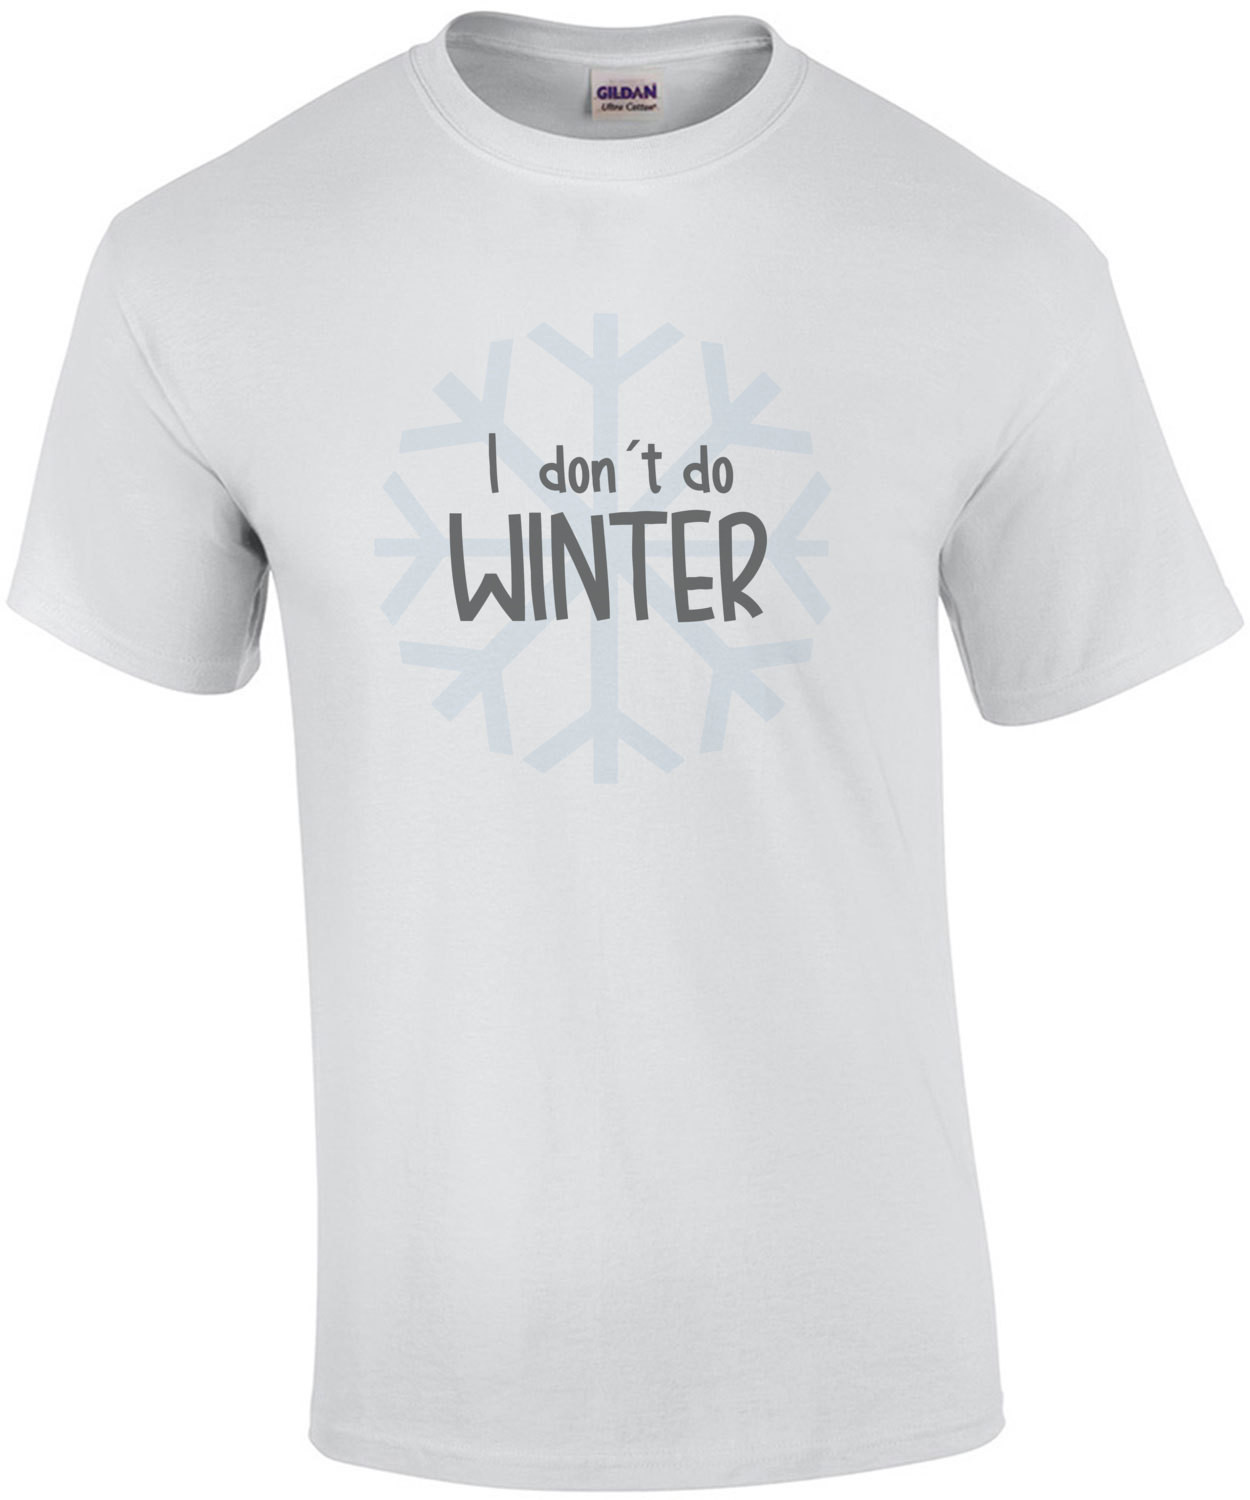 I don't do winter. Florida T-Shirt